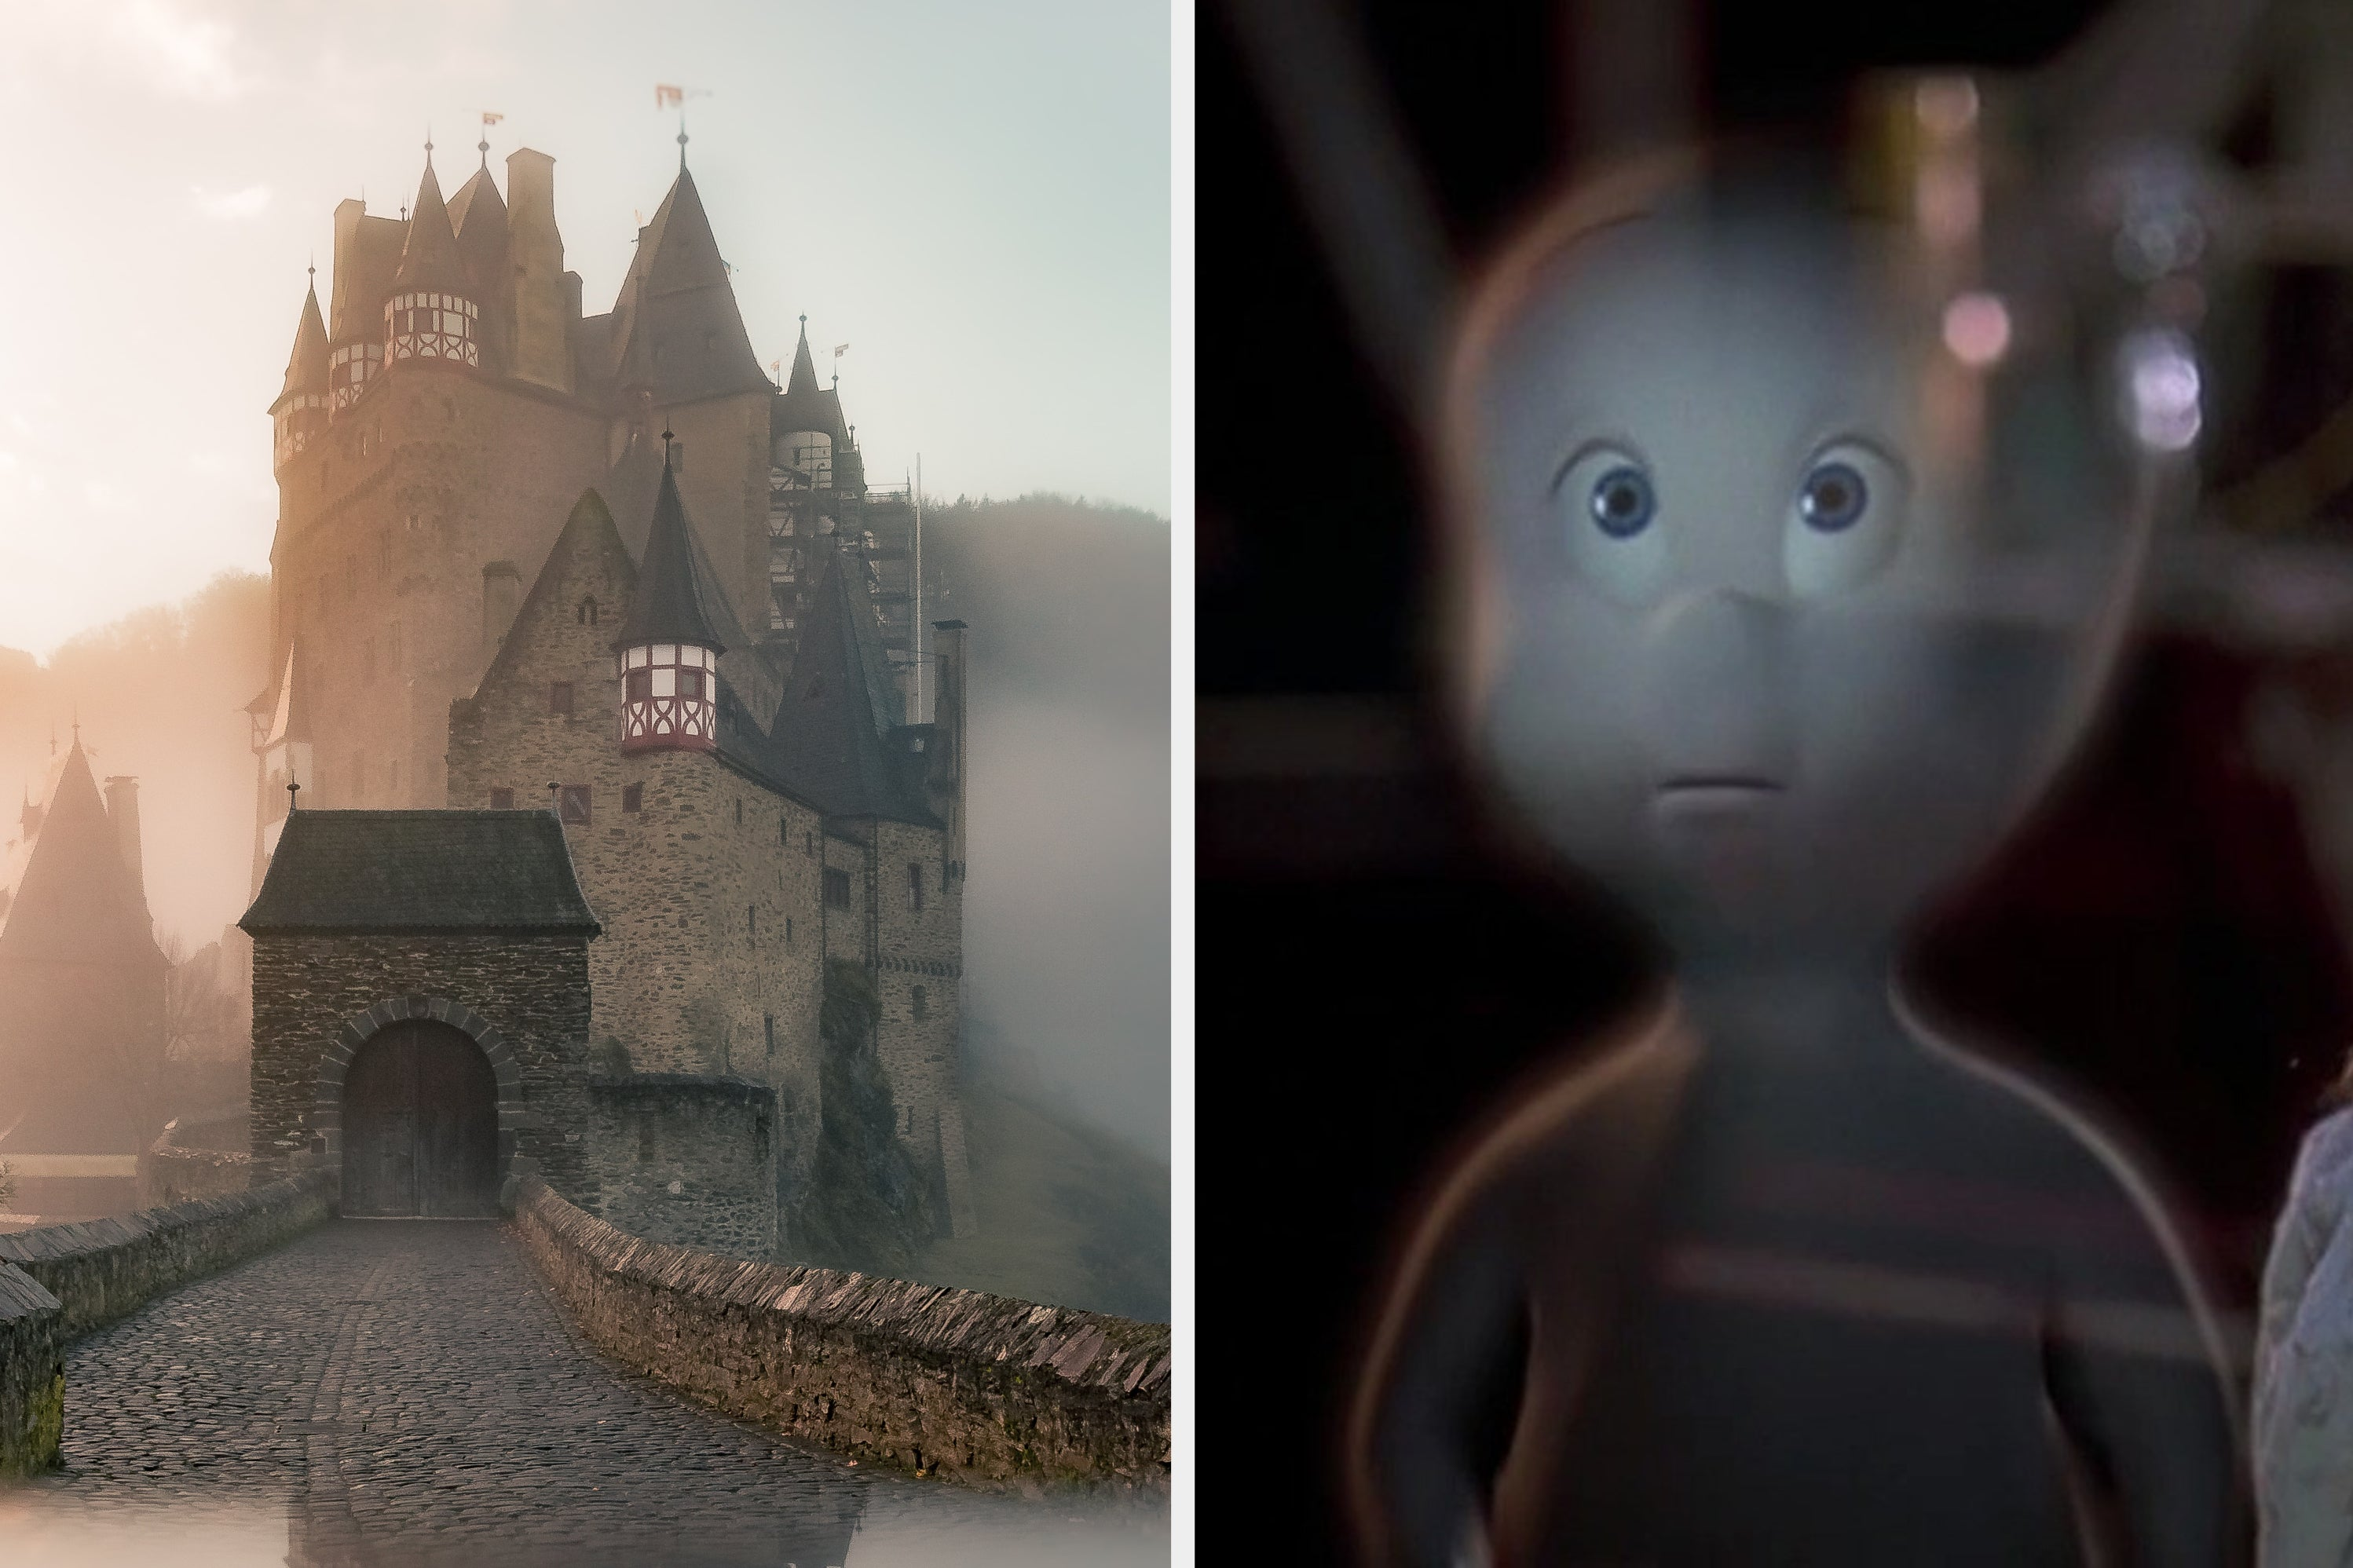 Move Into An Abandoned Castle, Like They Do In Horror Movies, And We'll Reveal The Ghost Who's Haunting It